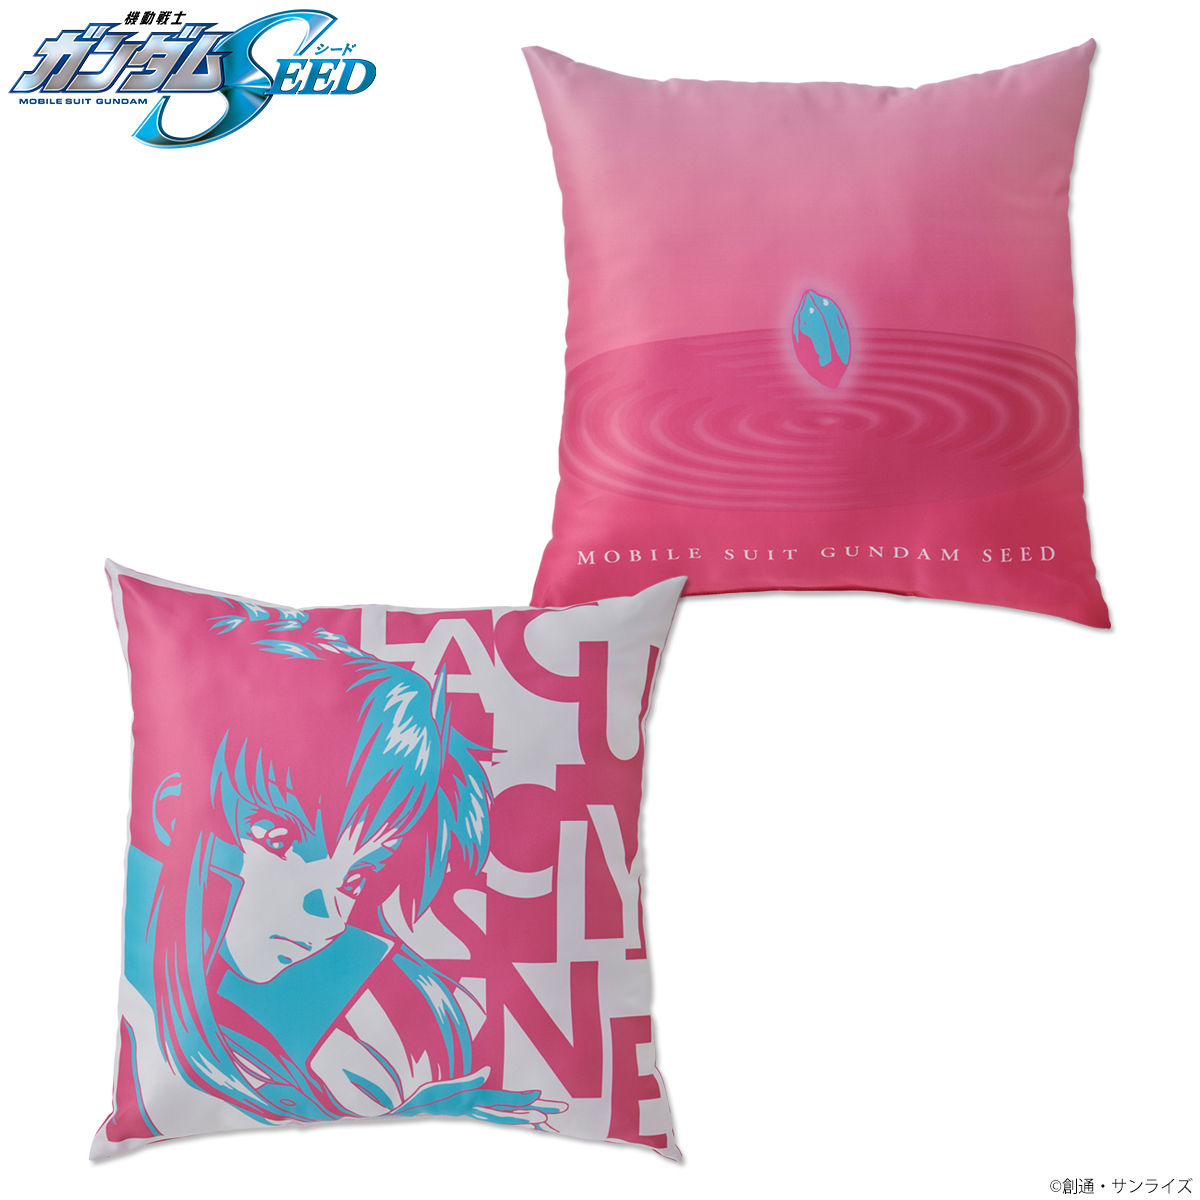 Mobile Suit Gundam SEED Tricolor-themed Pillow